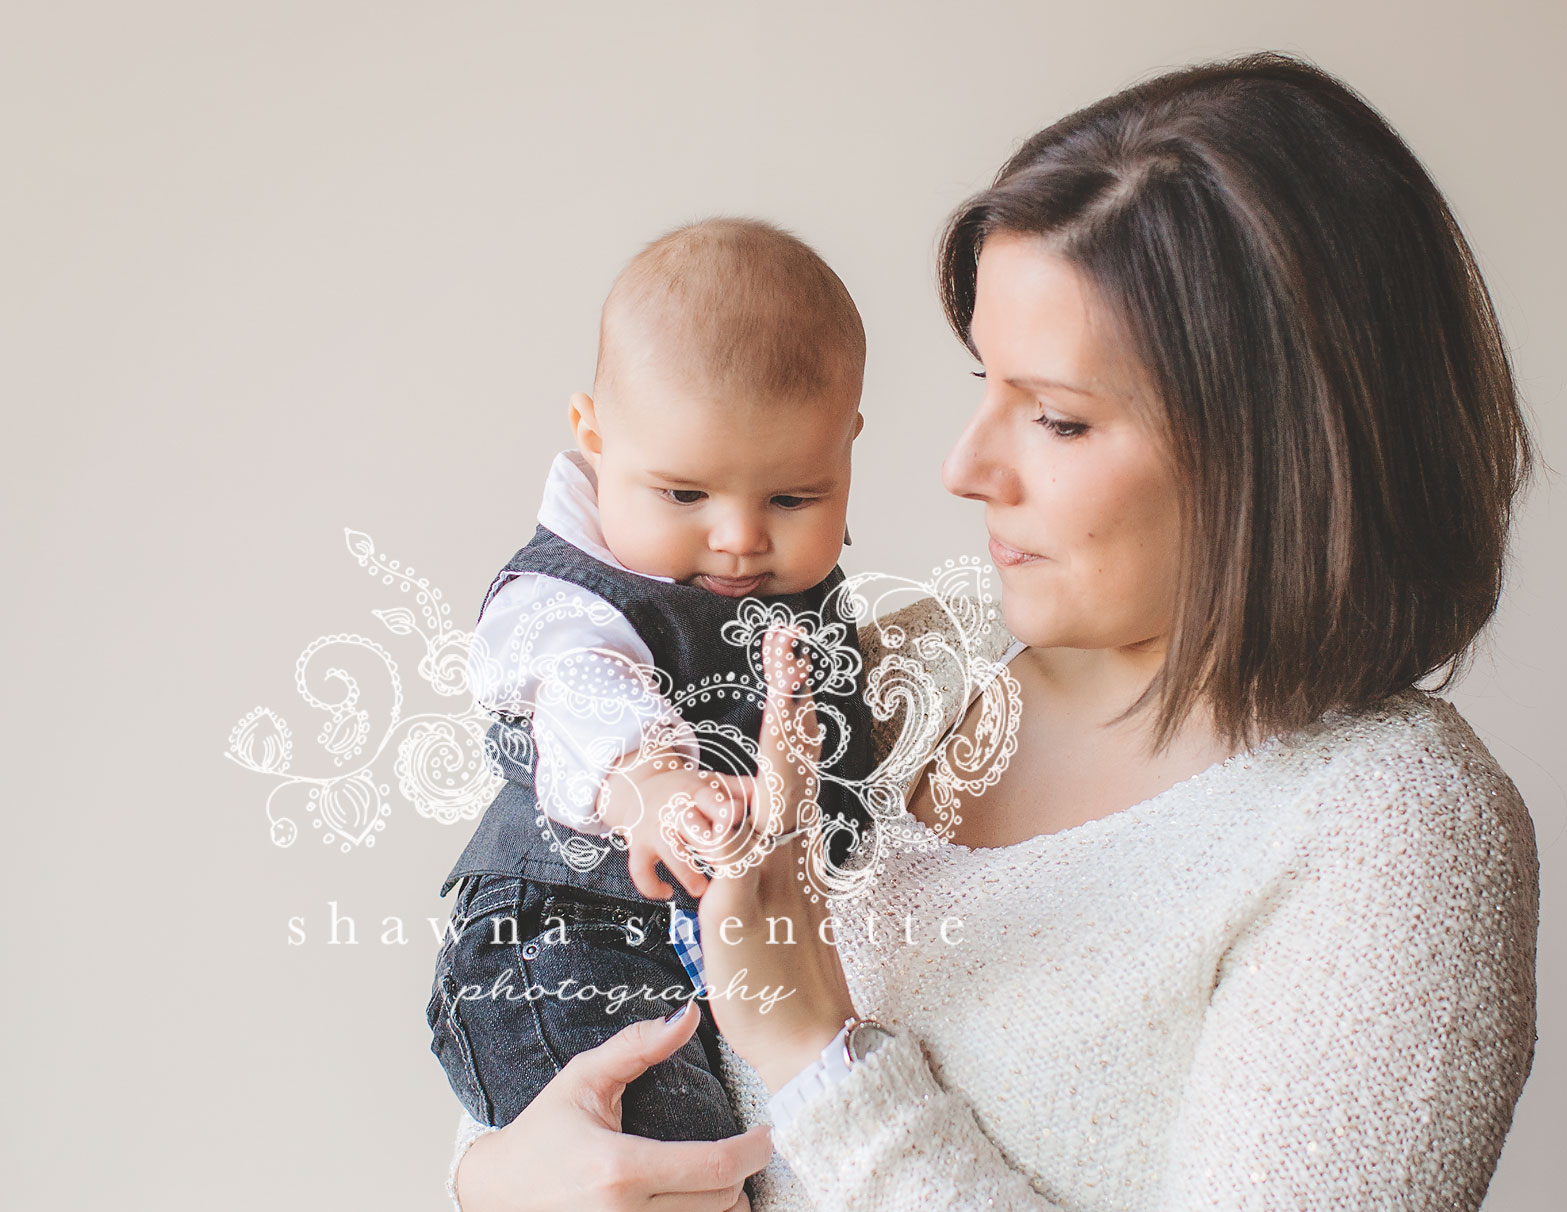 millbury, ma baby boy photos central ma 6 month old portraits holiday photographer worcester